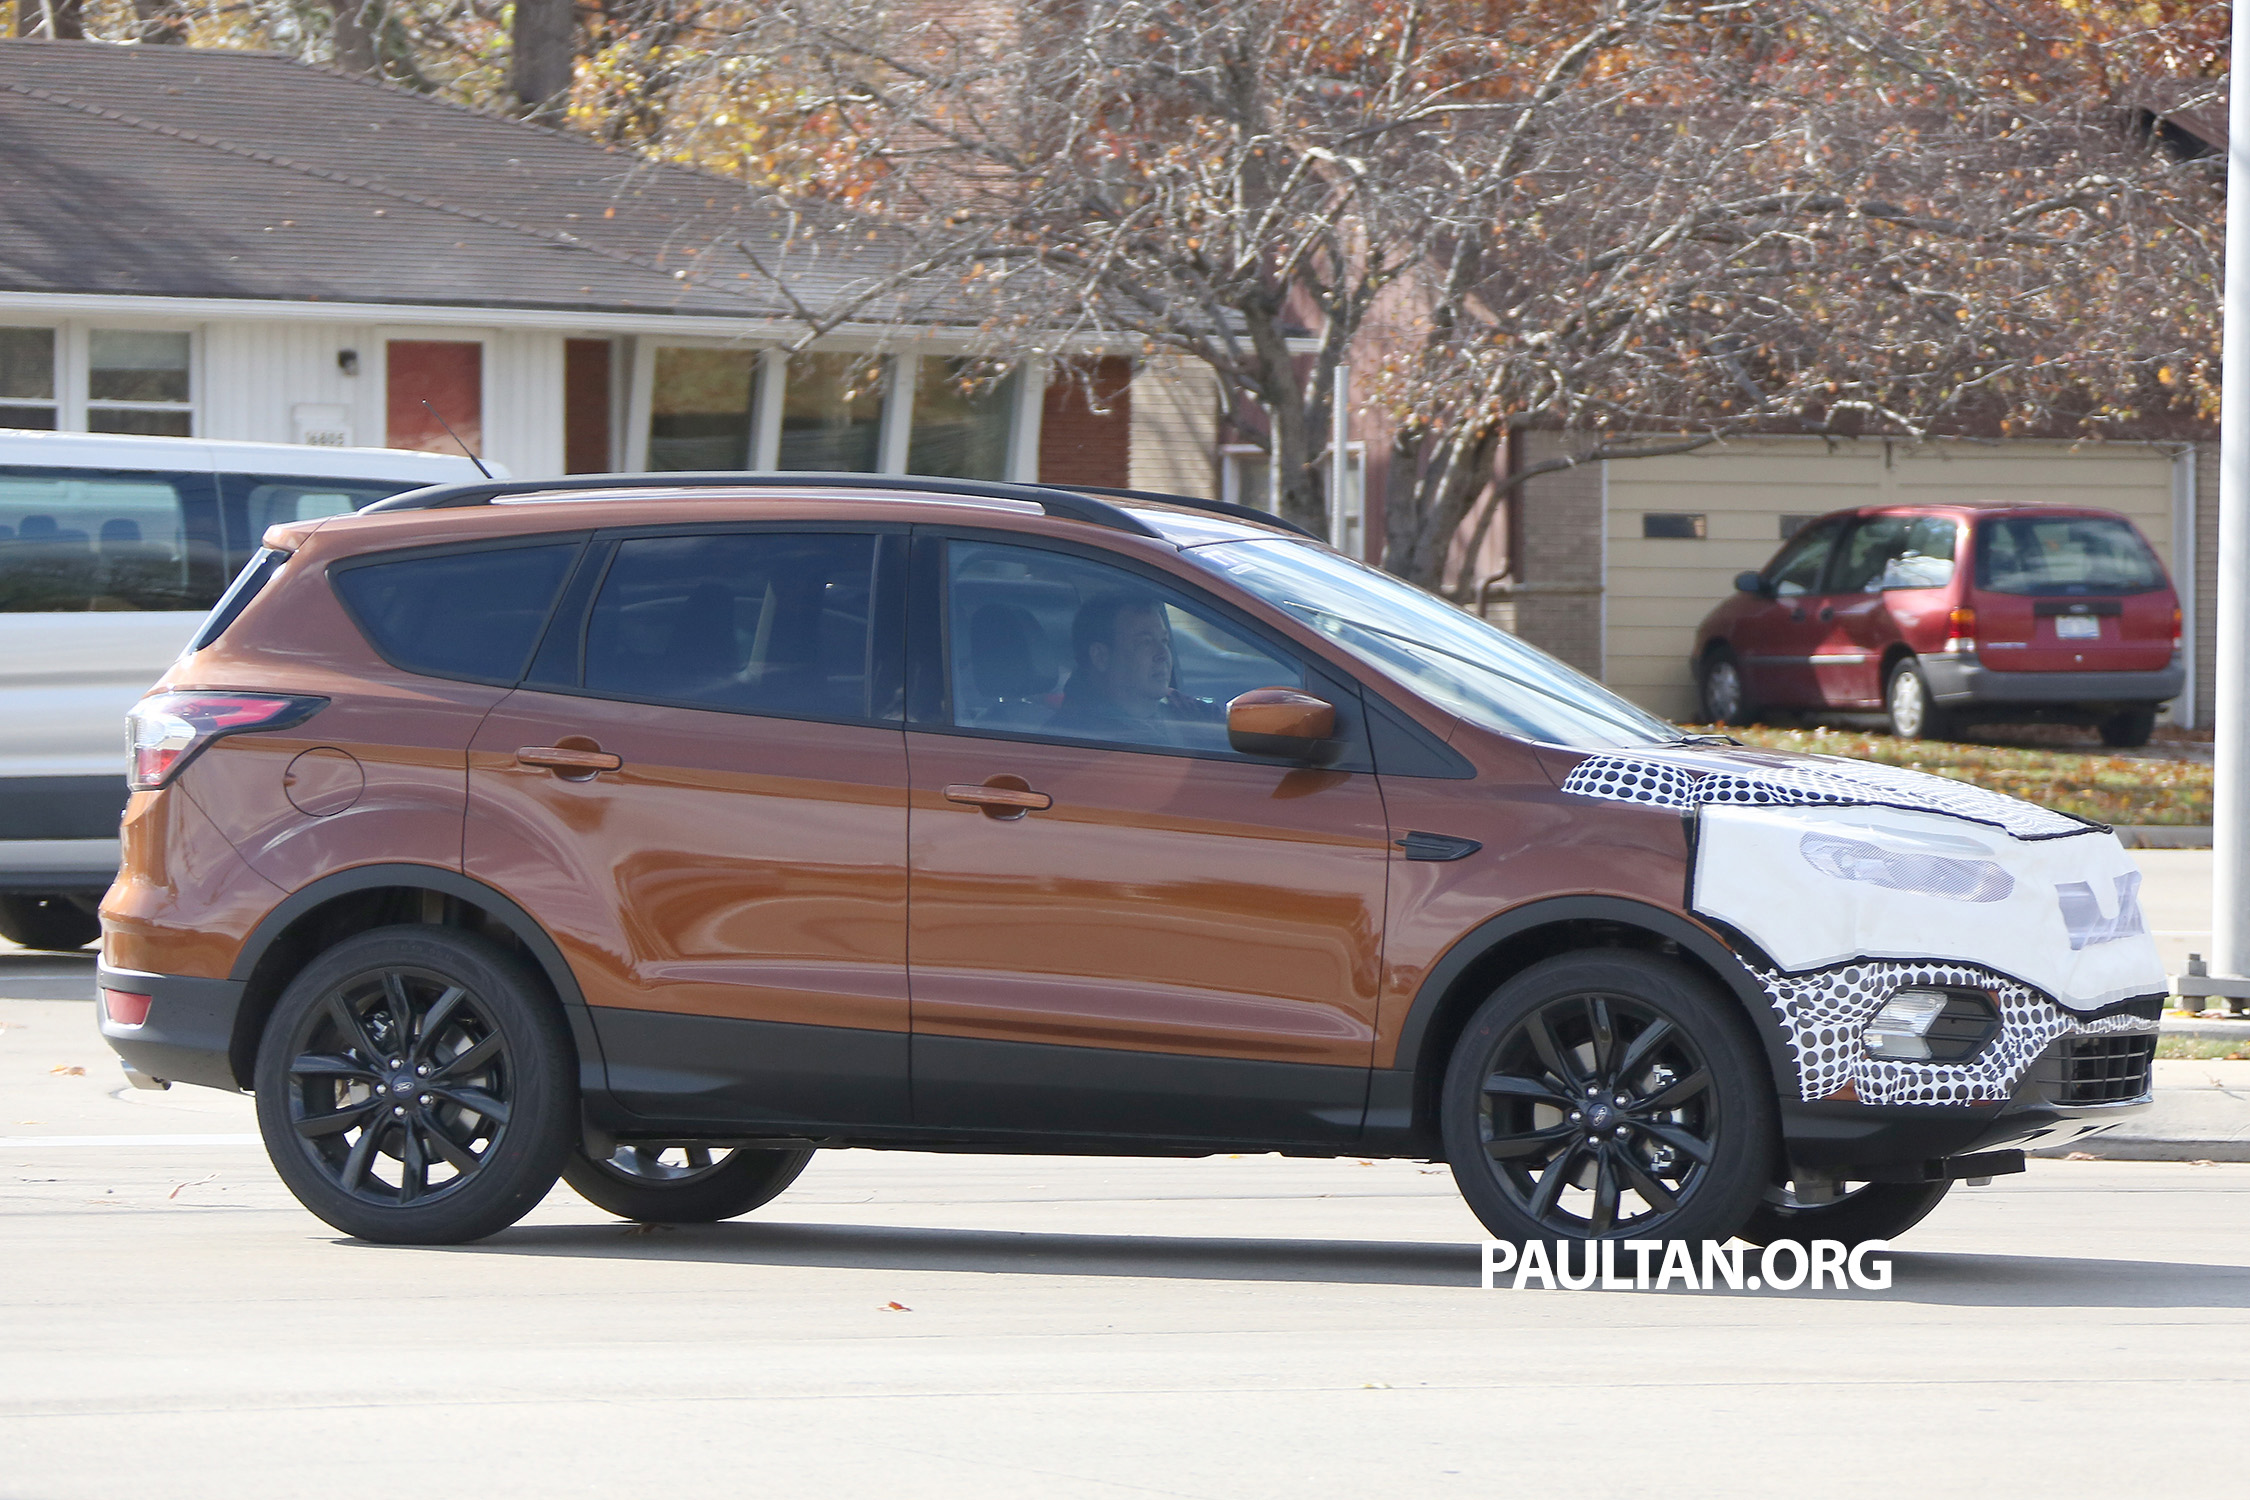 spyshots c520 ford kuga facelift a clearer view image. Black Bedroom Furniture Sets. Home Design Ideas